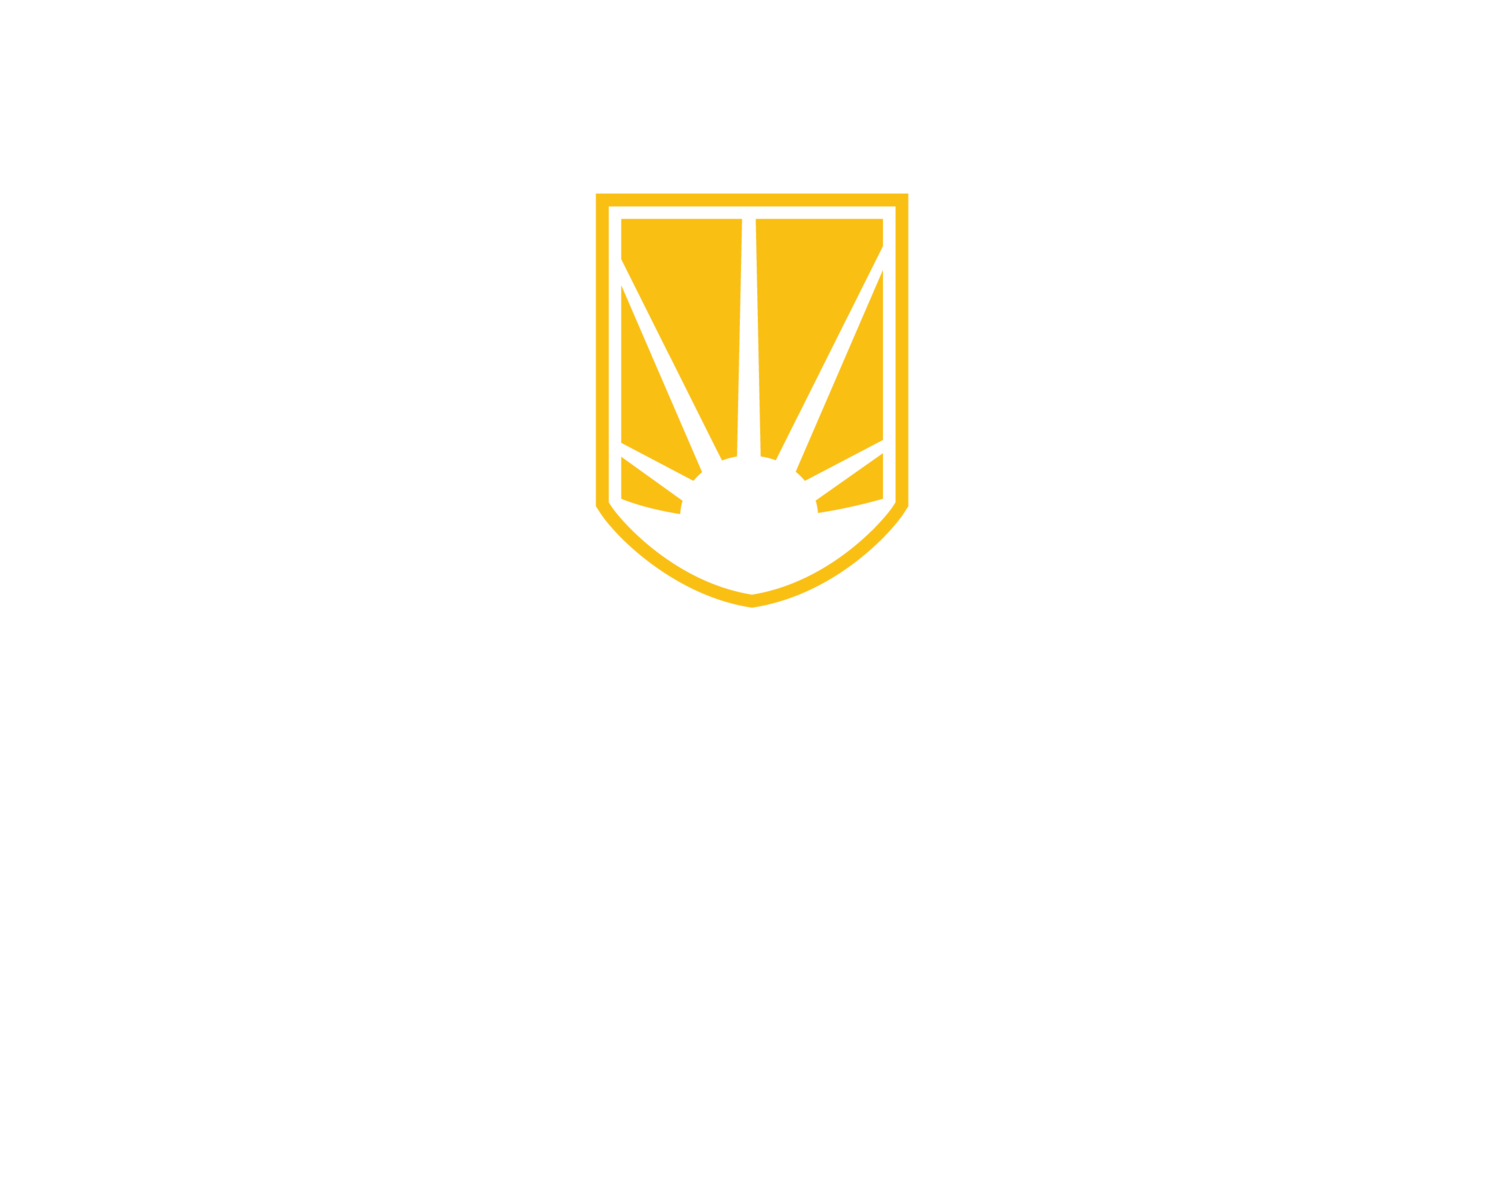 South Dallas Community Church